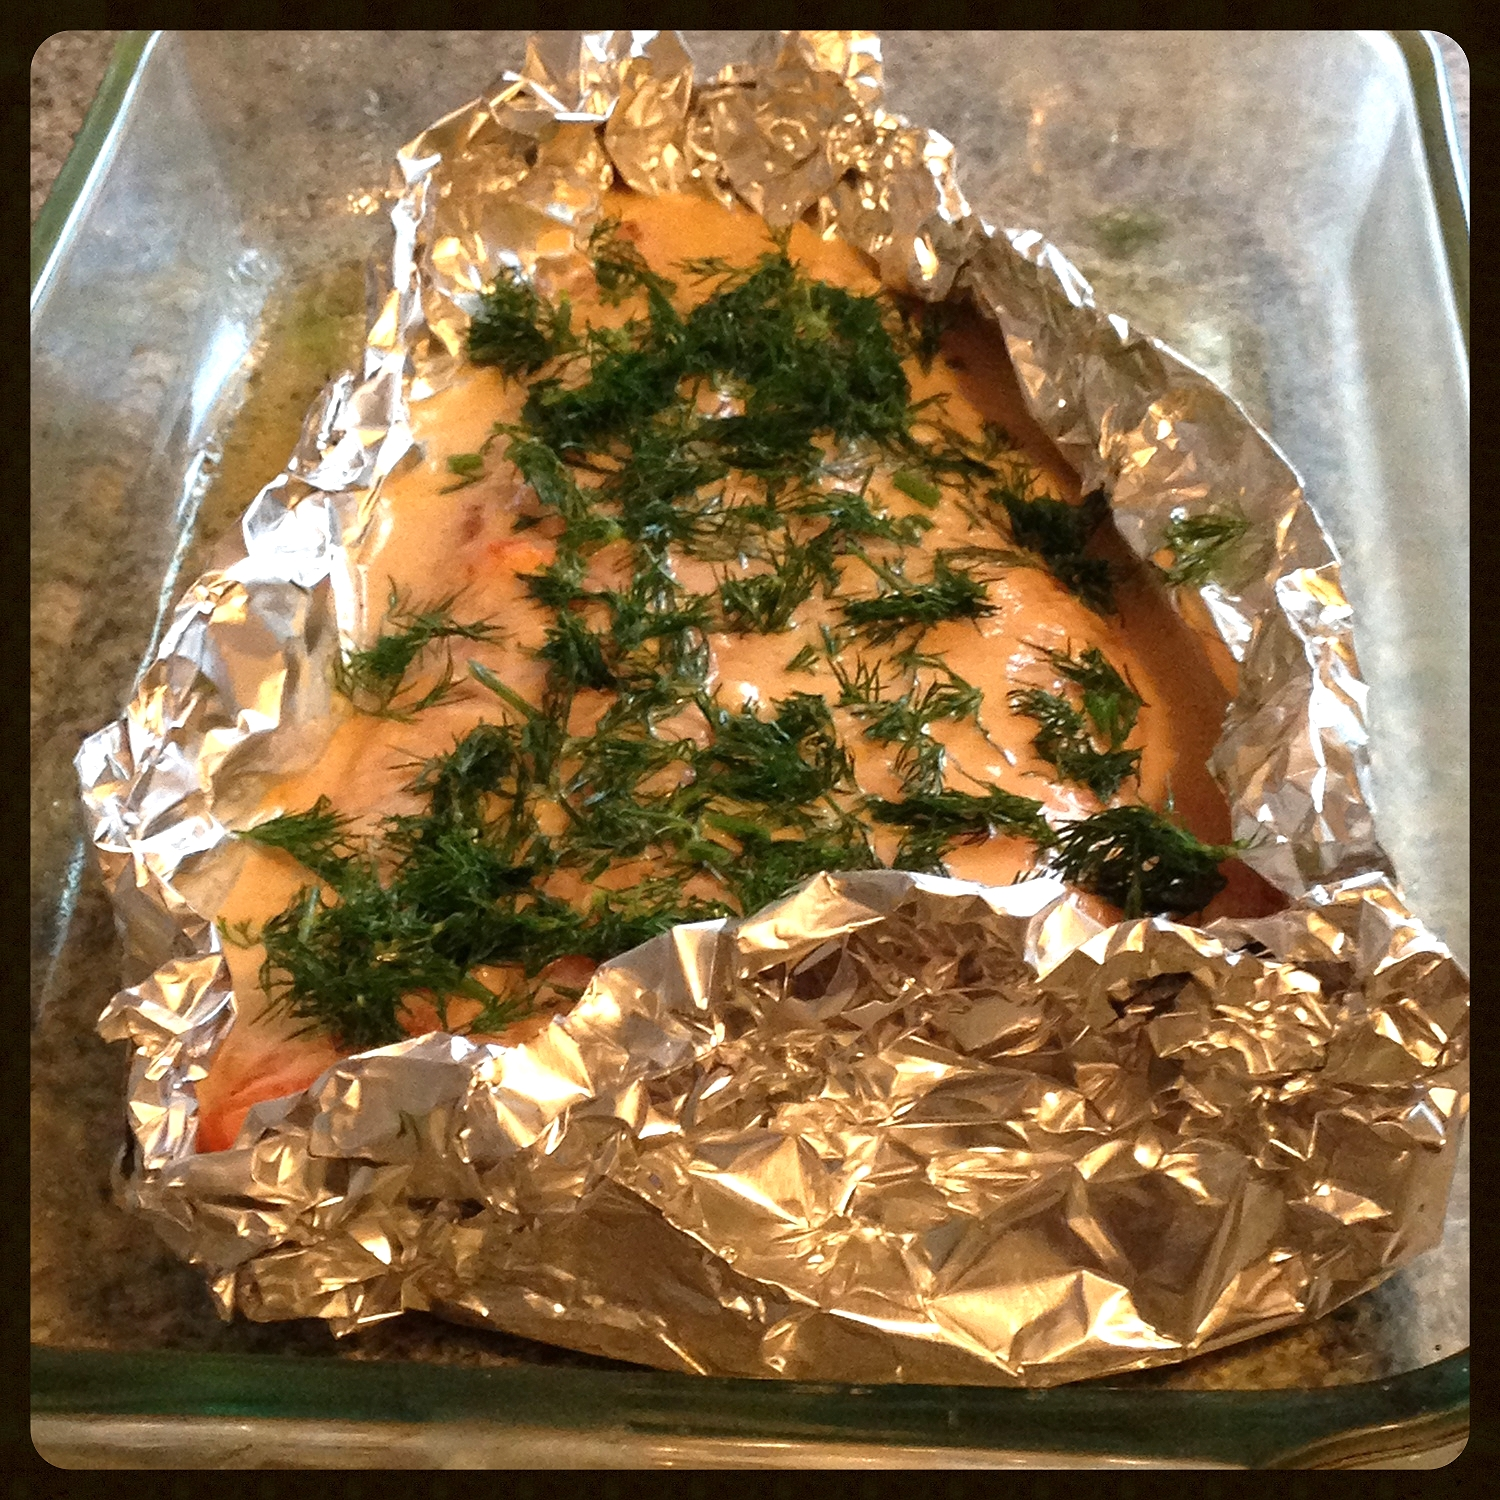 Getting ready to bake the Salmon